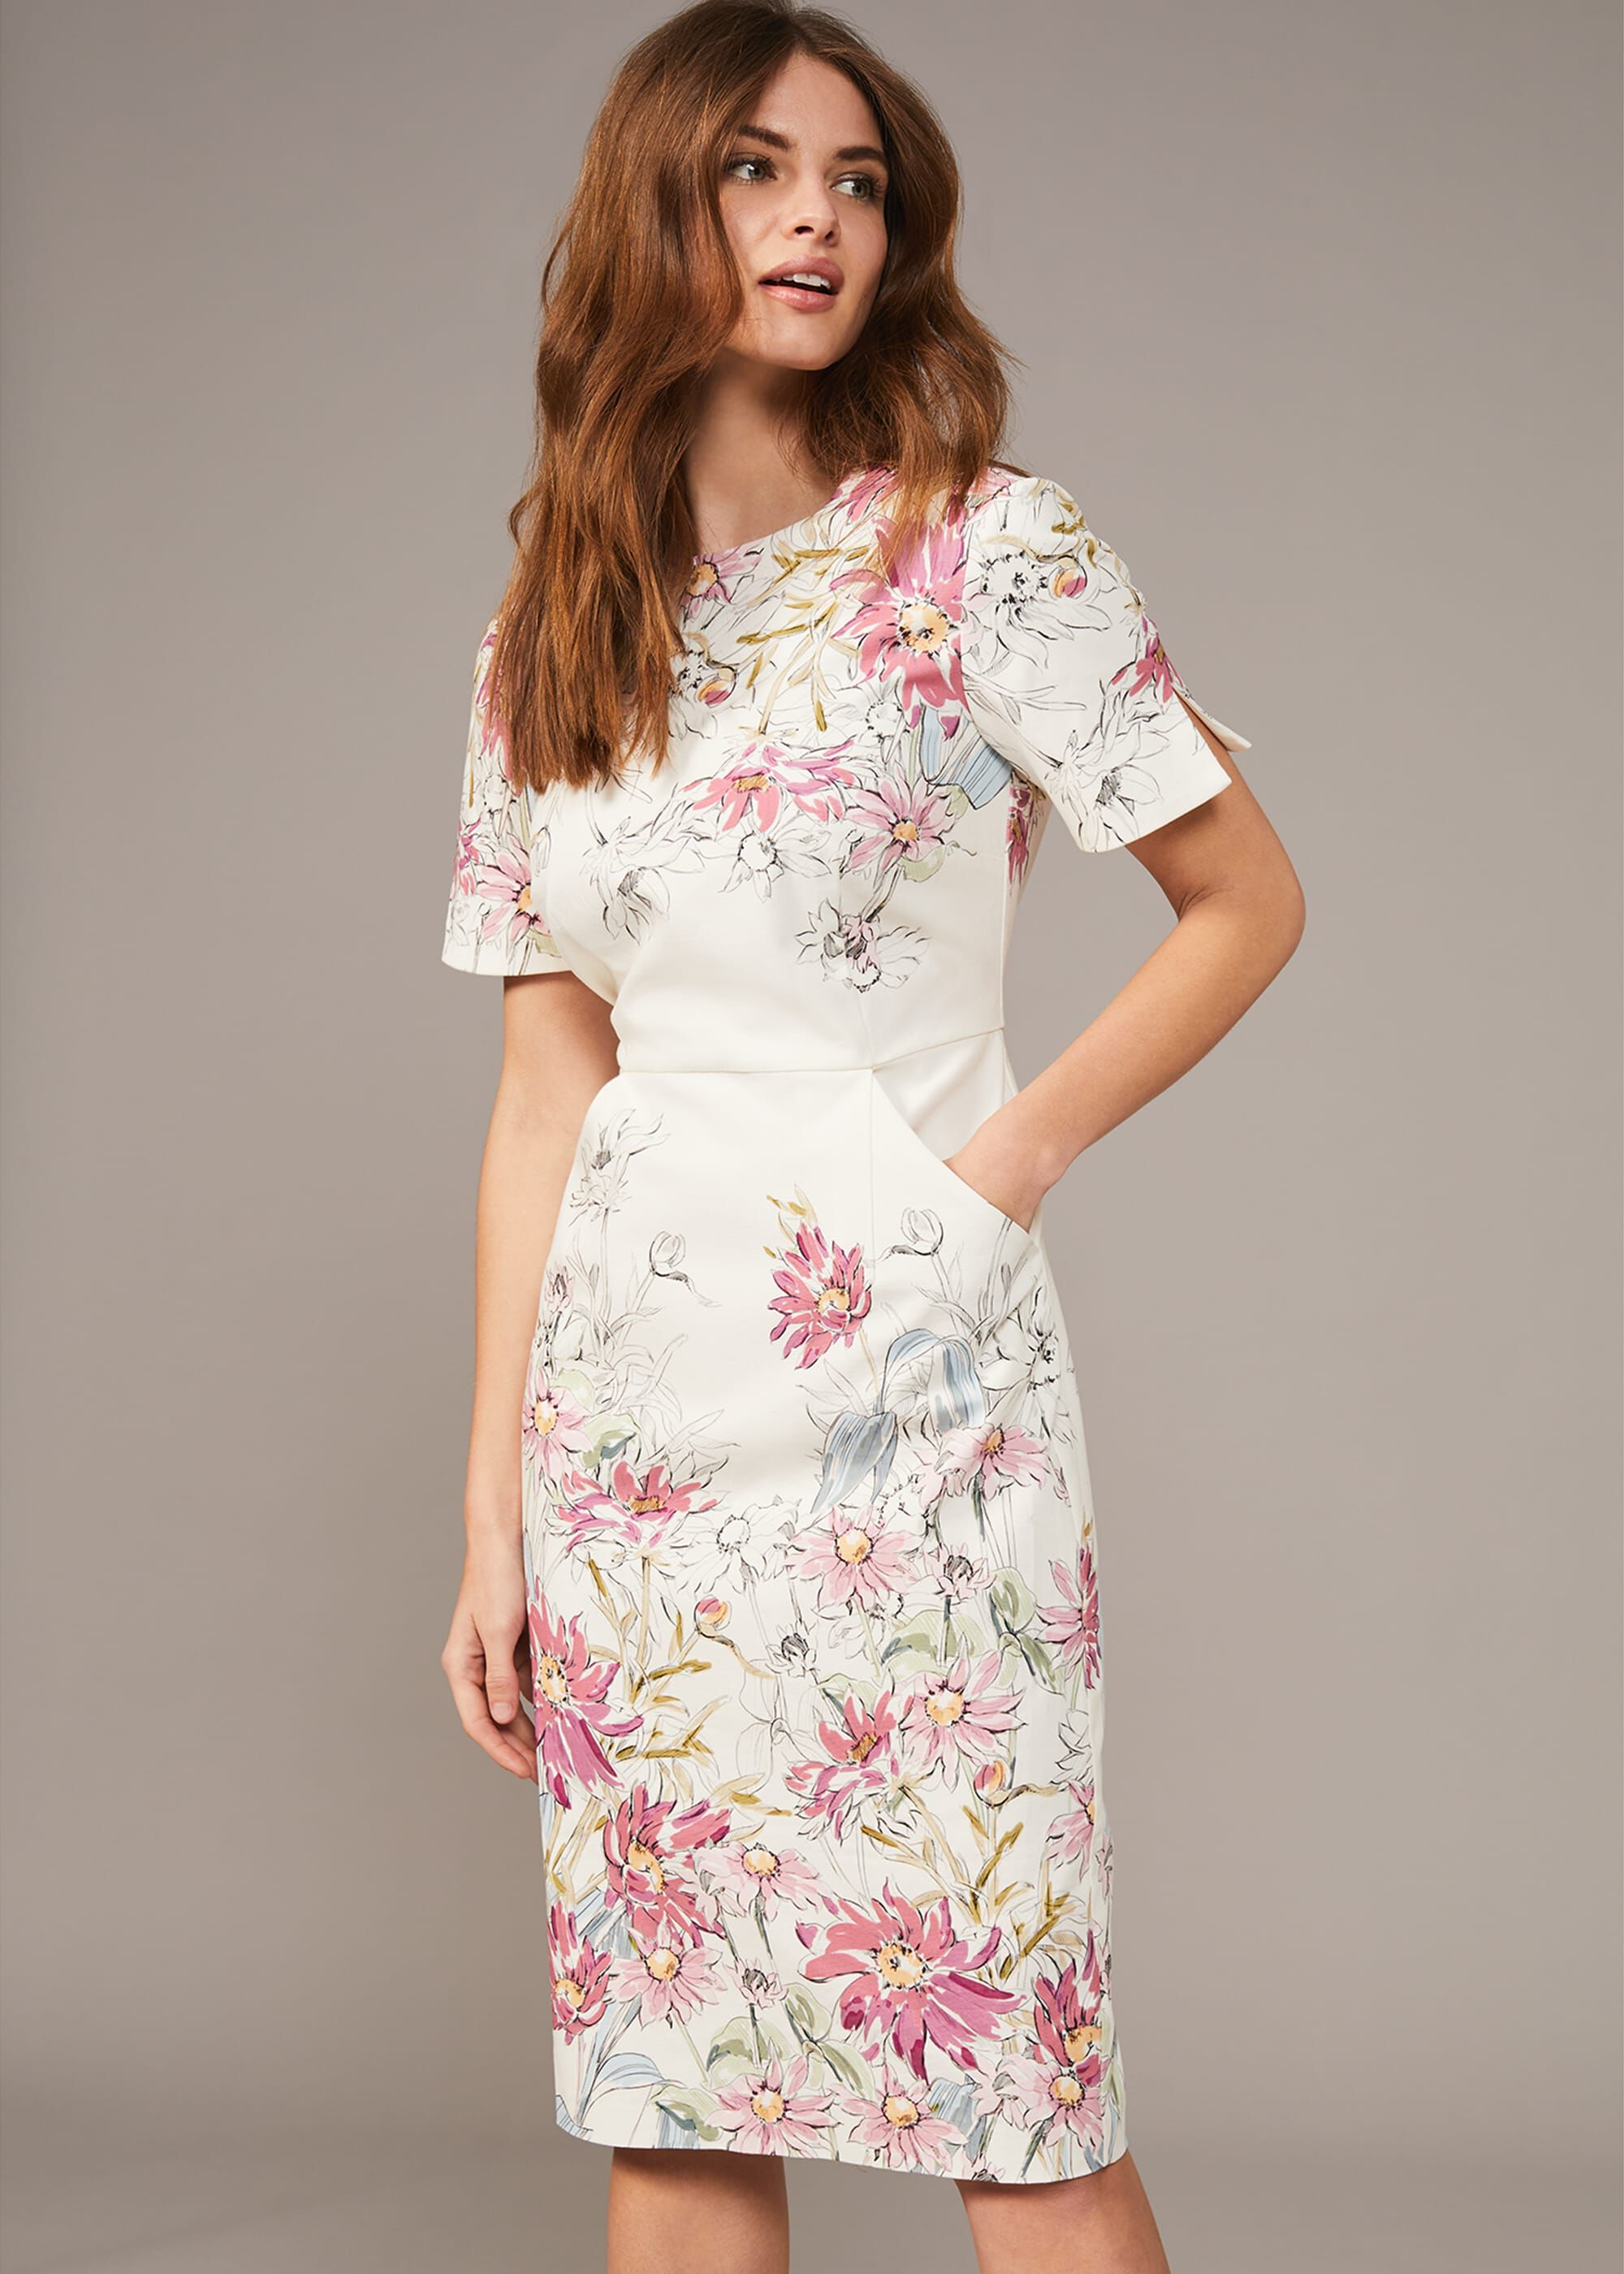 Phase Eight Marie Floral Fitted Dress, Cream, Shift, Occasion Dress